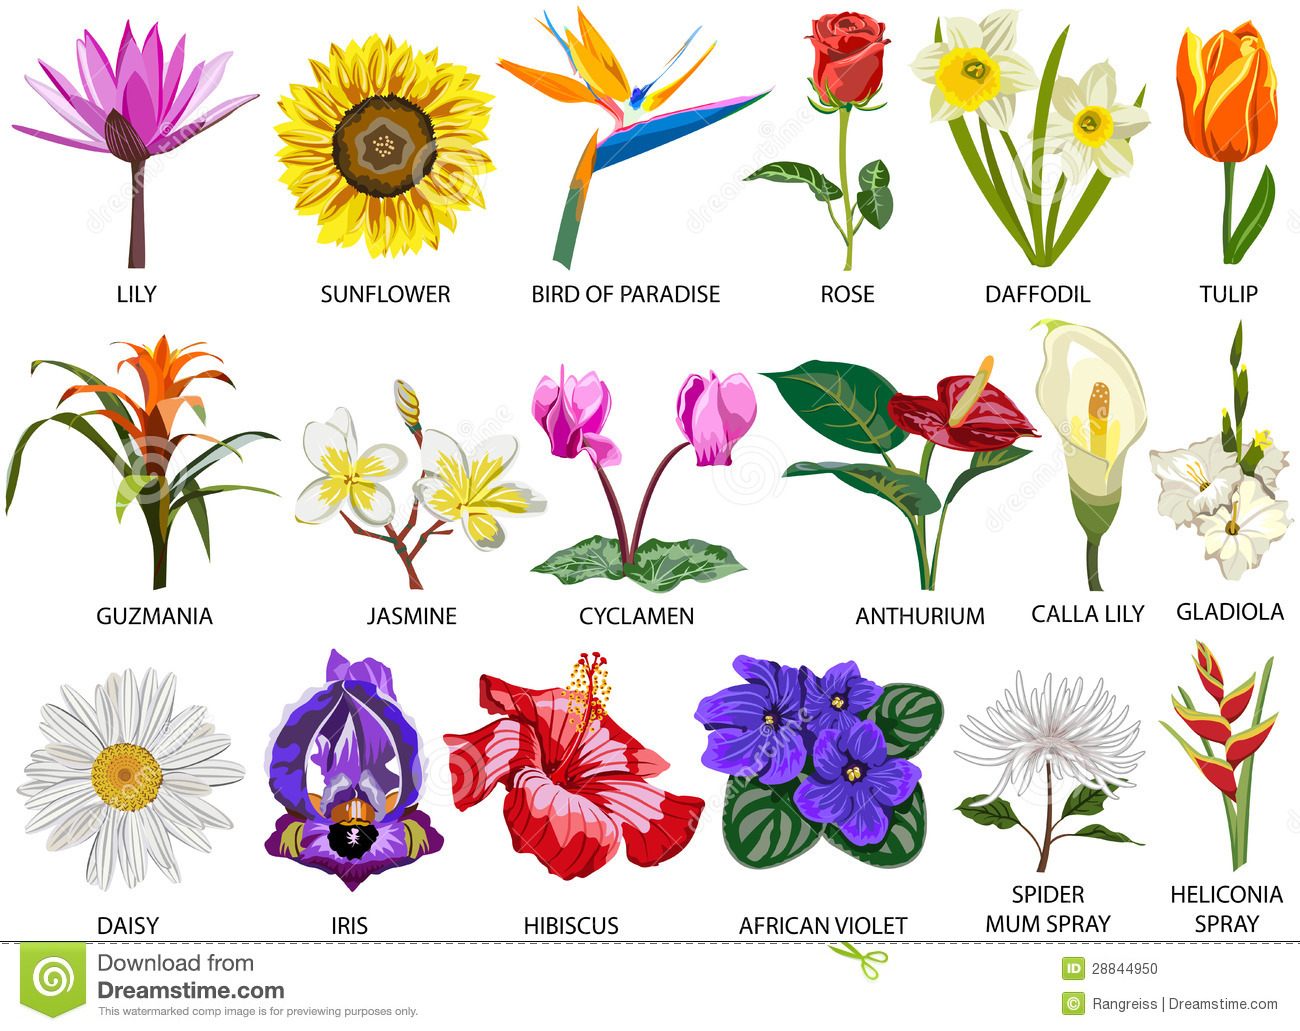 18 species of colorful flowers stock photo   image 28844950